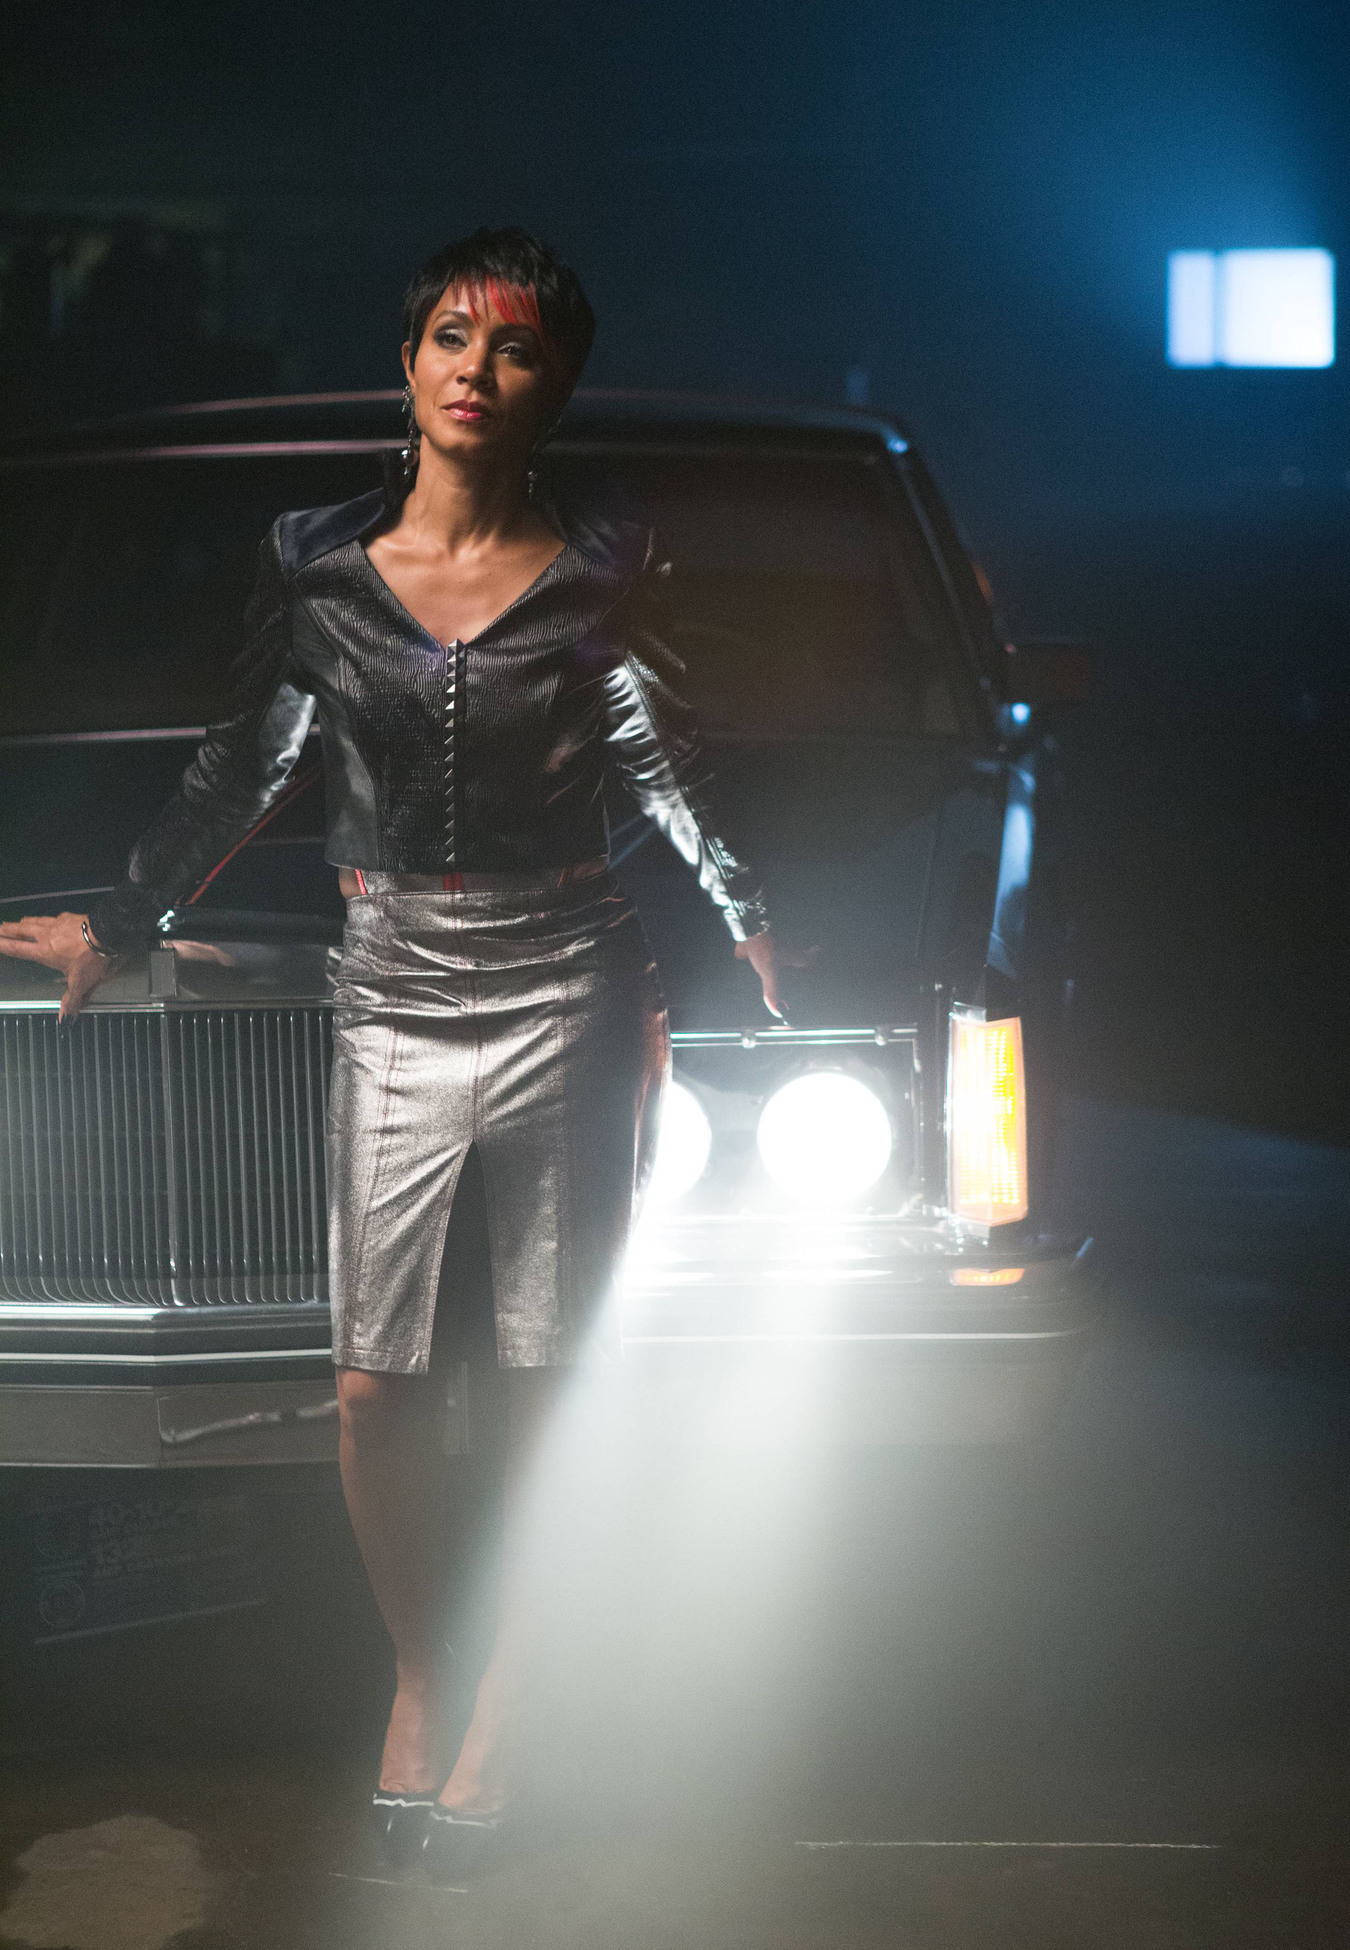 """GOTHAM: Fish Mooney (Jada Pinkett Smith) tests a potential business associate in the """"Arkham"""" episode of GOTHAM airing Monday, Oct. 13 (8:00-9:00 PM ET/PT) on FOX. ©2014 Fox Broadcasting Co. Cr: Jessica Miglio/FOX"""